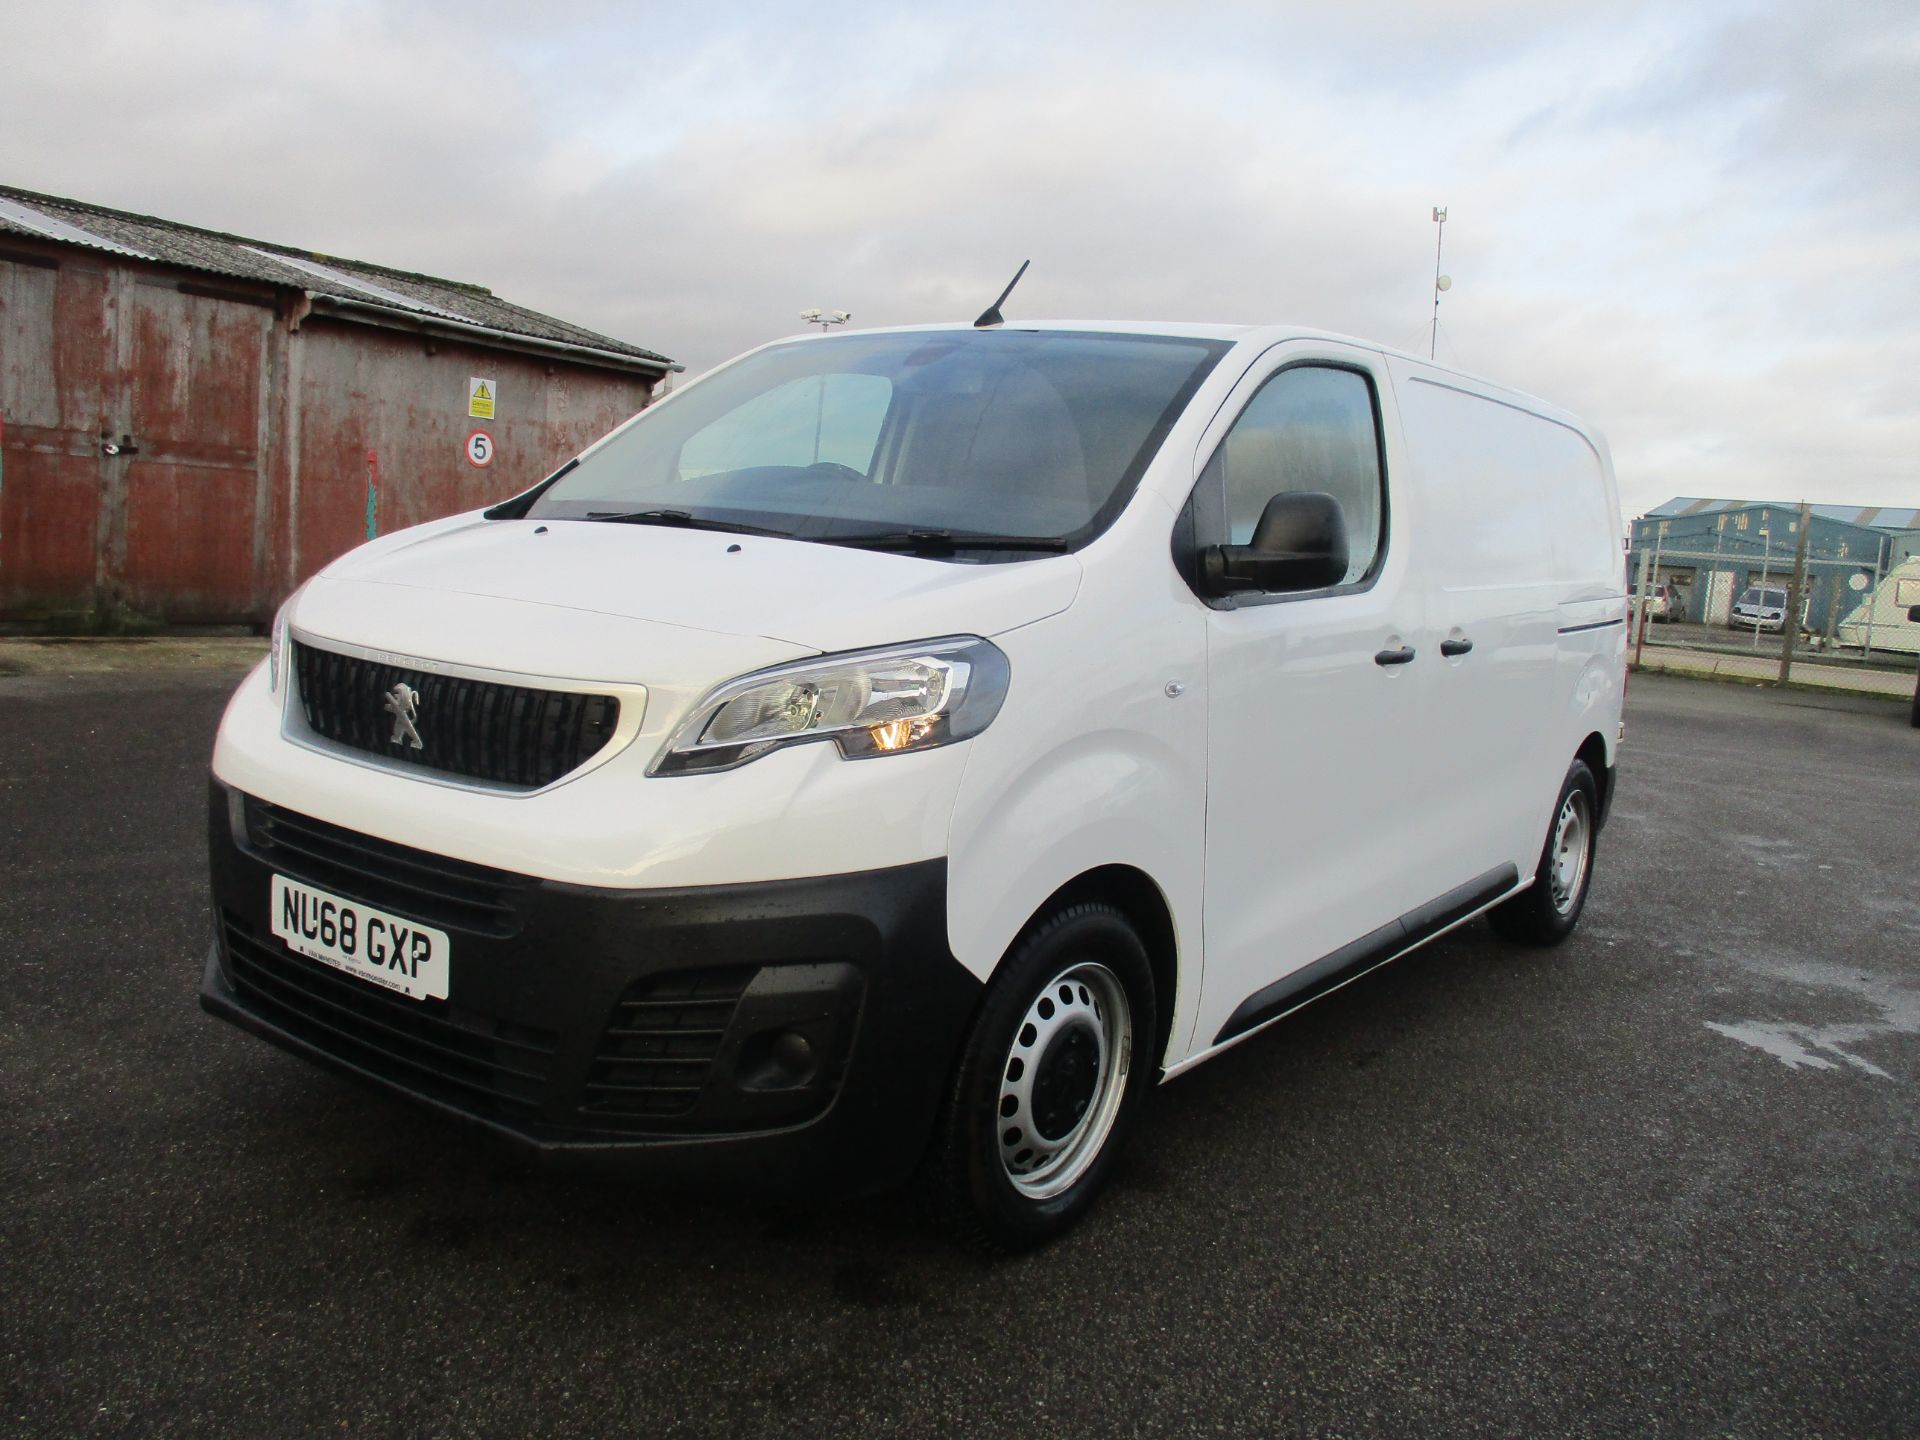 2018 Peugeot Expert STANDARD 1000 1.6 BLUE HDI 95 PROFESSIONAL EURO 6. AIR CON (NU68GXP) Image 3